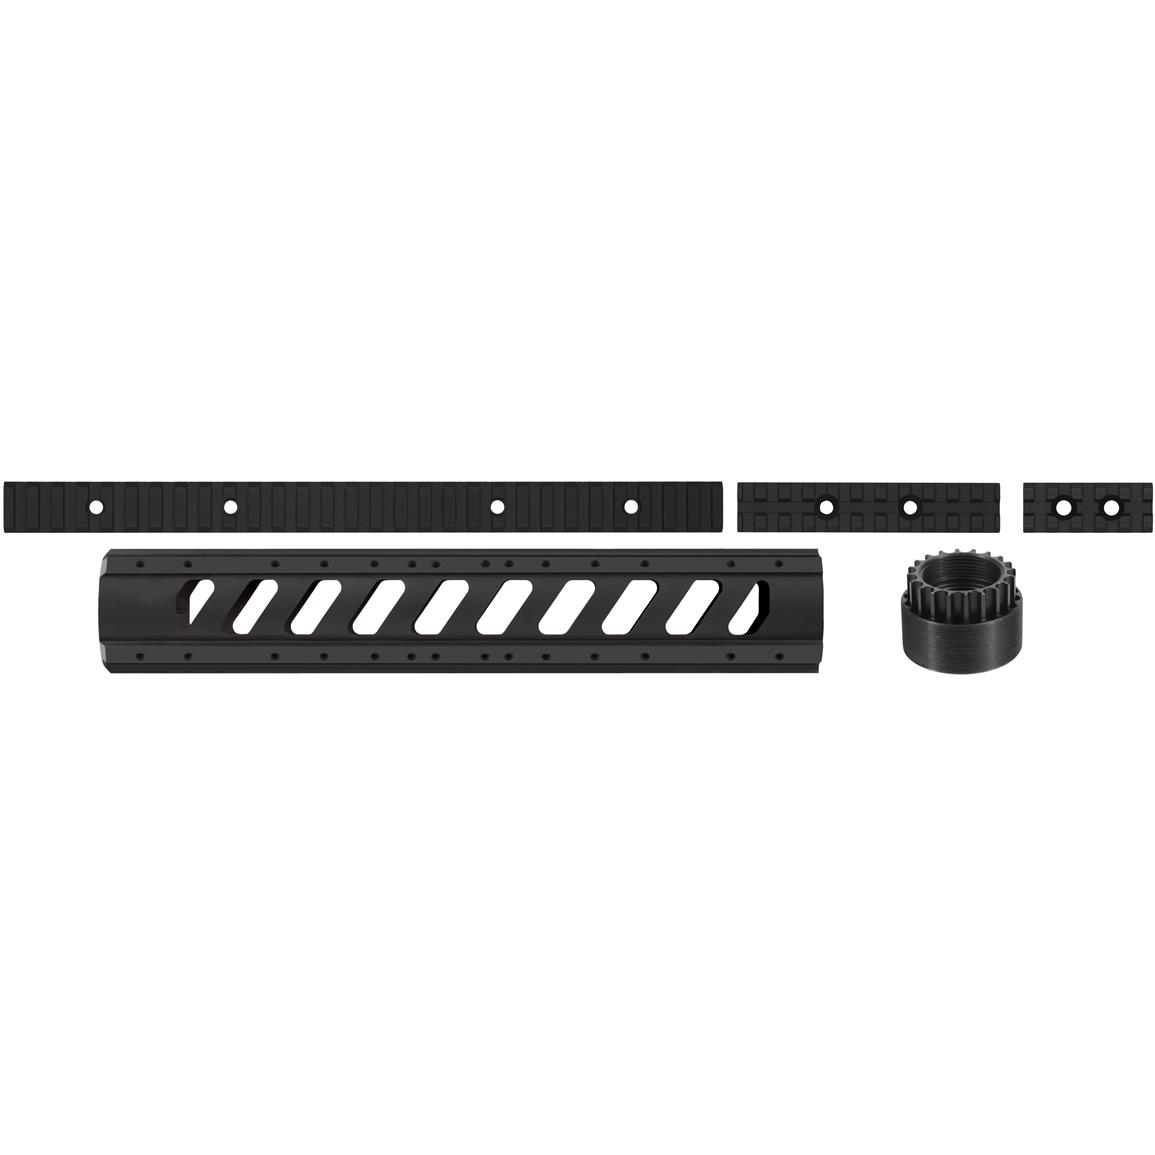 "ATI AR-15 Aluminum 6-Sided 12"" Rifle Length Free Float Forend Package"